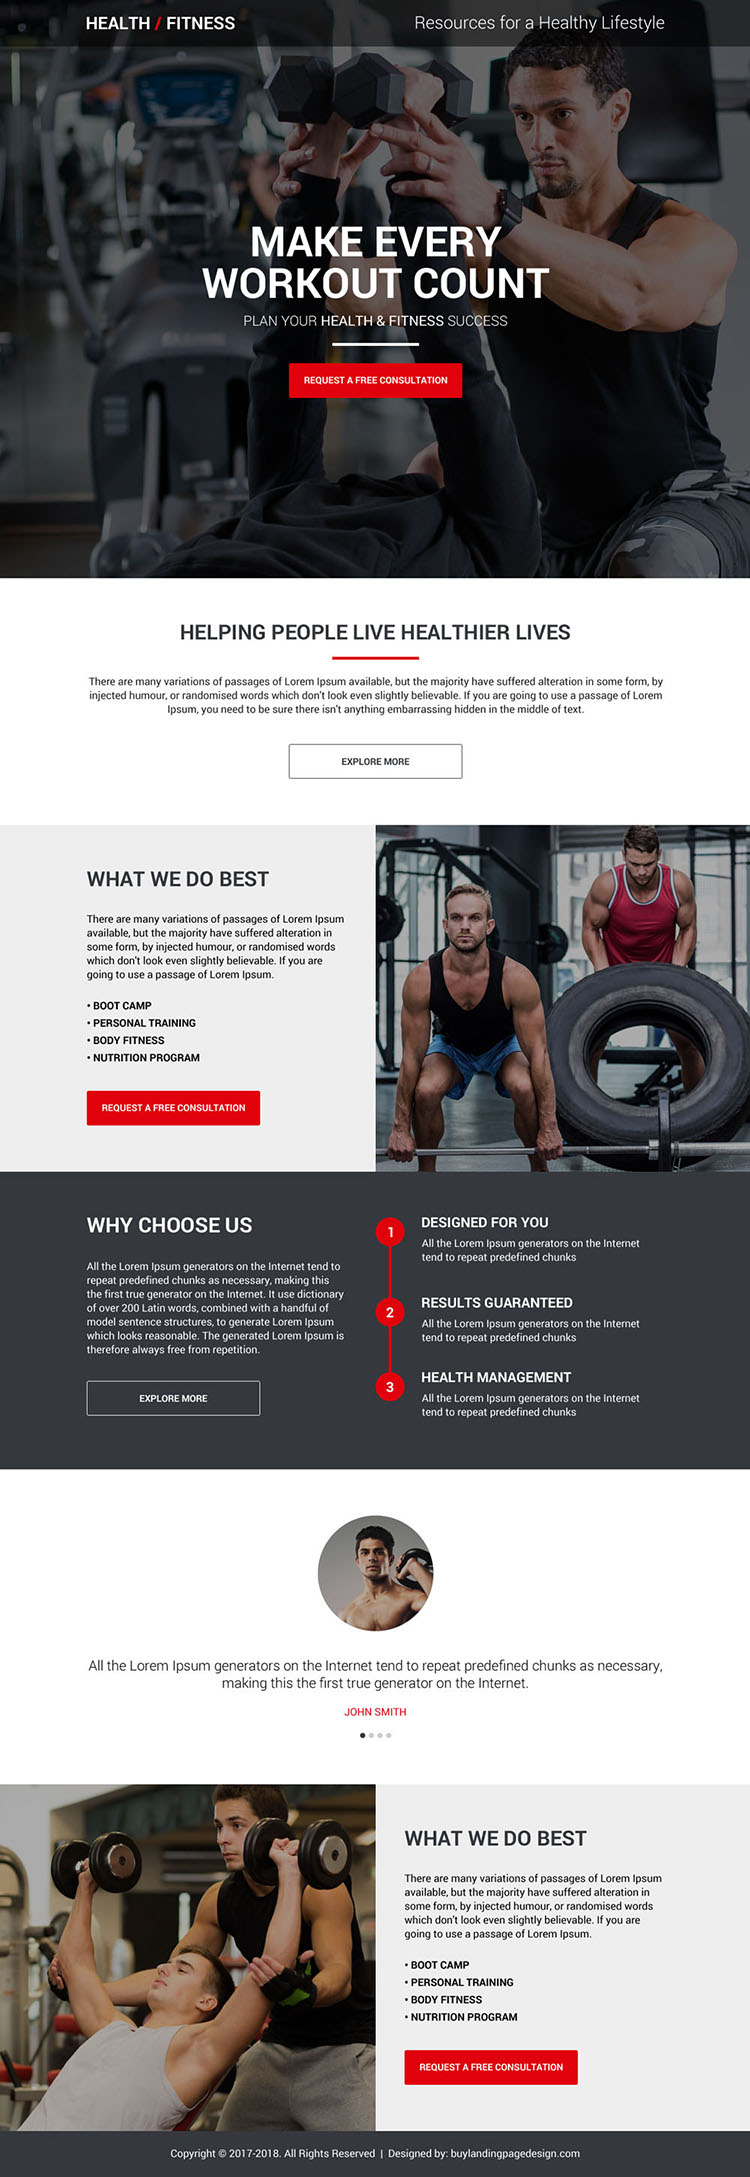 health and fitness free consultation lead capturing landing page